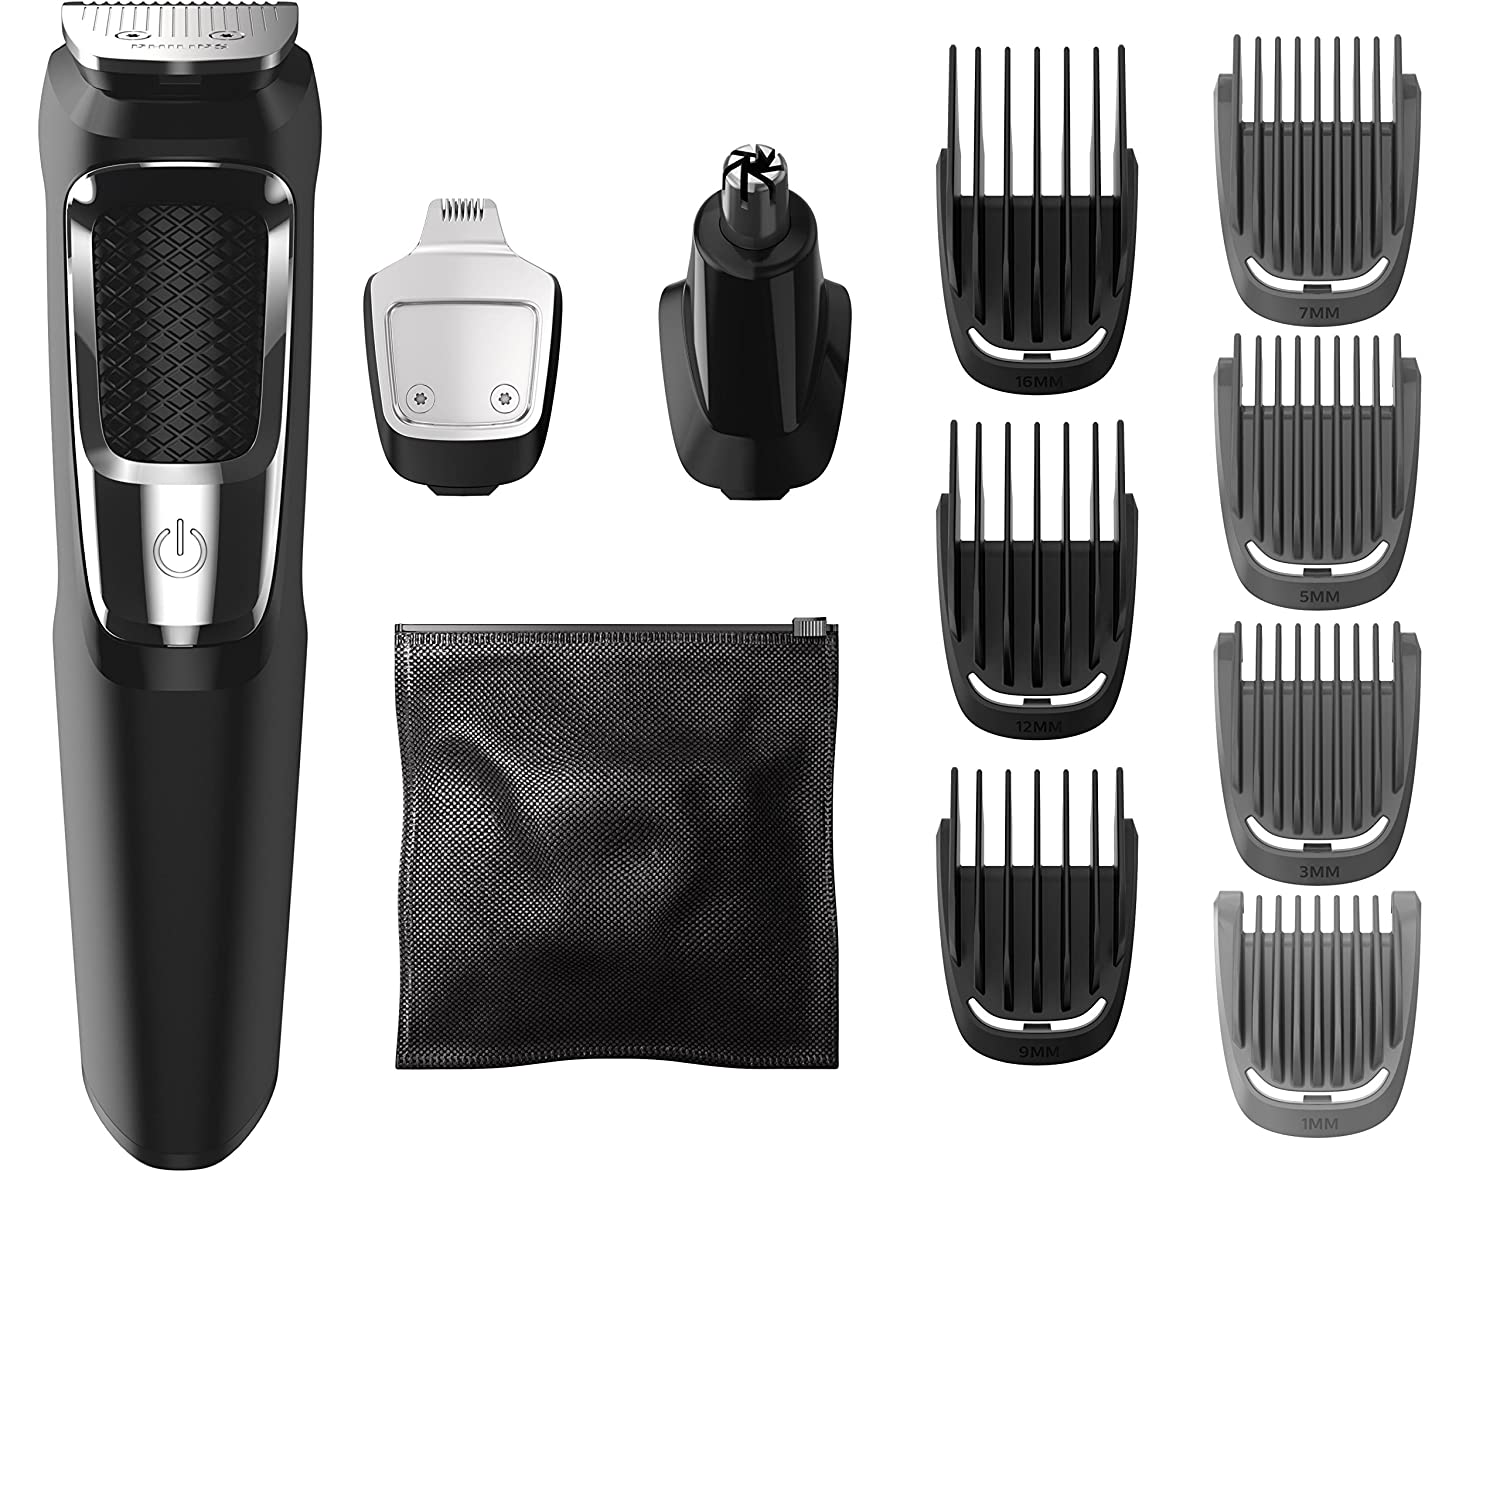 Philips Norelco MG3750 Multigroom All-In-One Series 3000 with attachments